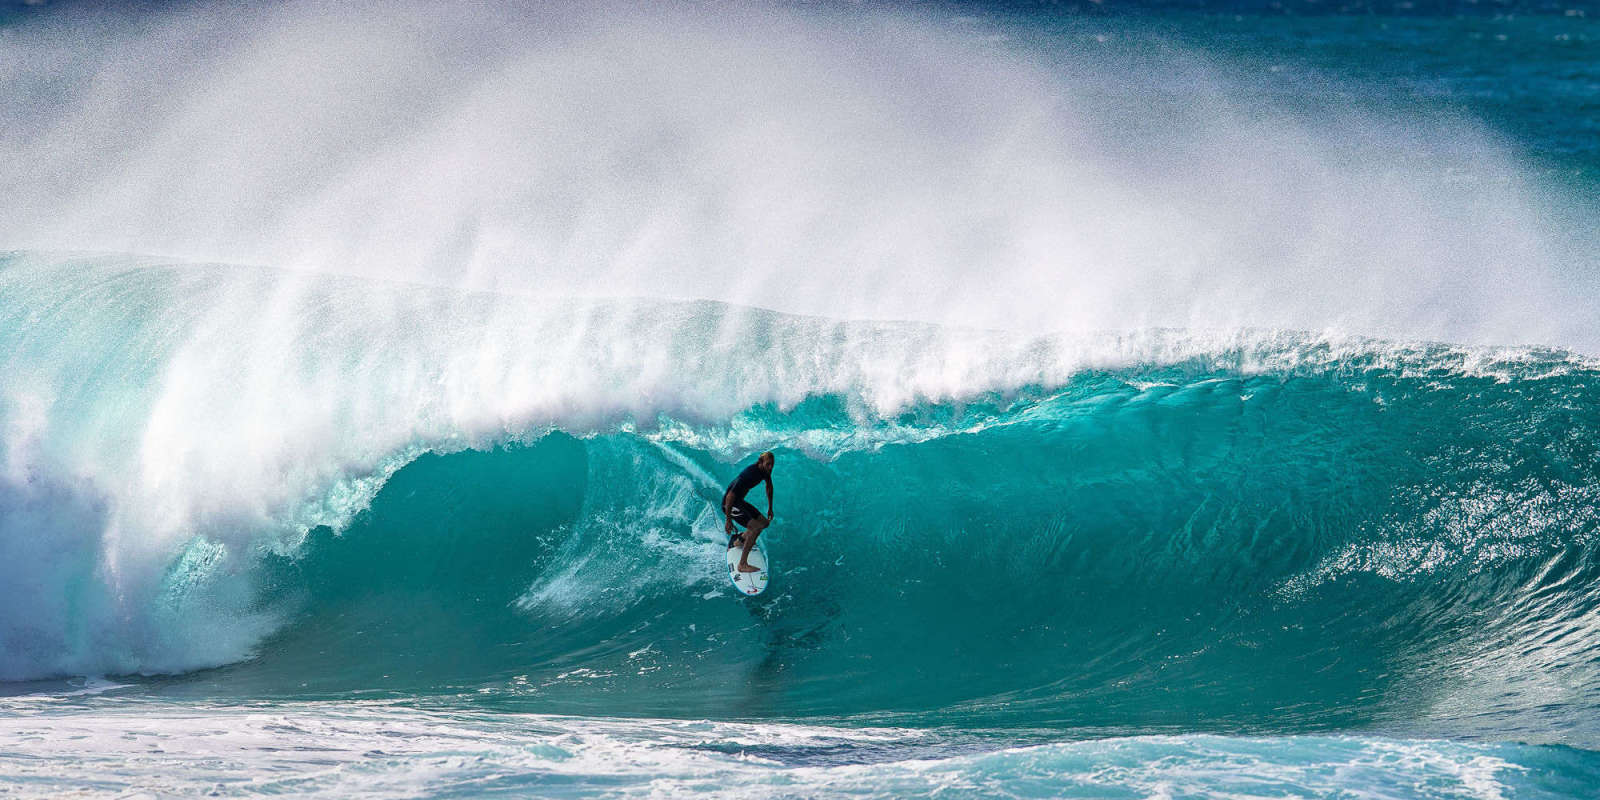 He's back surfing big Pipe for the first time since his traumatic brain injury two years ago, and by all accounts, he's been loving it.